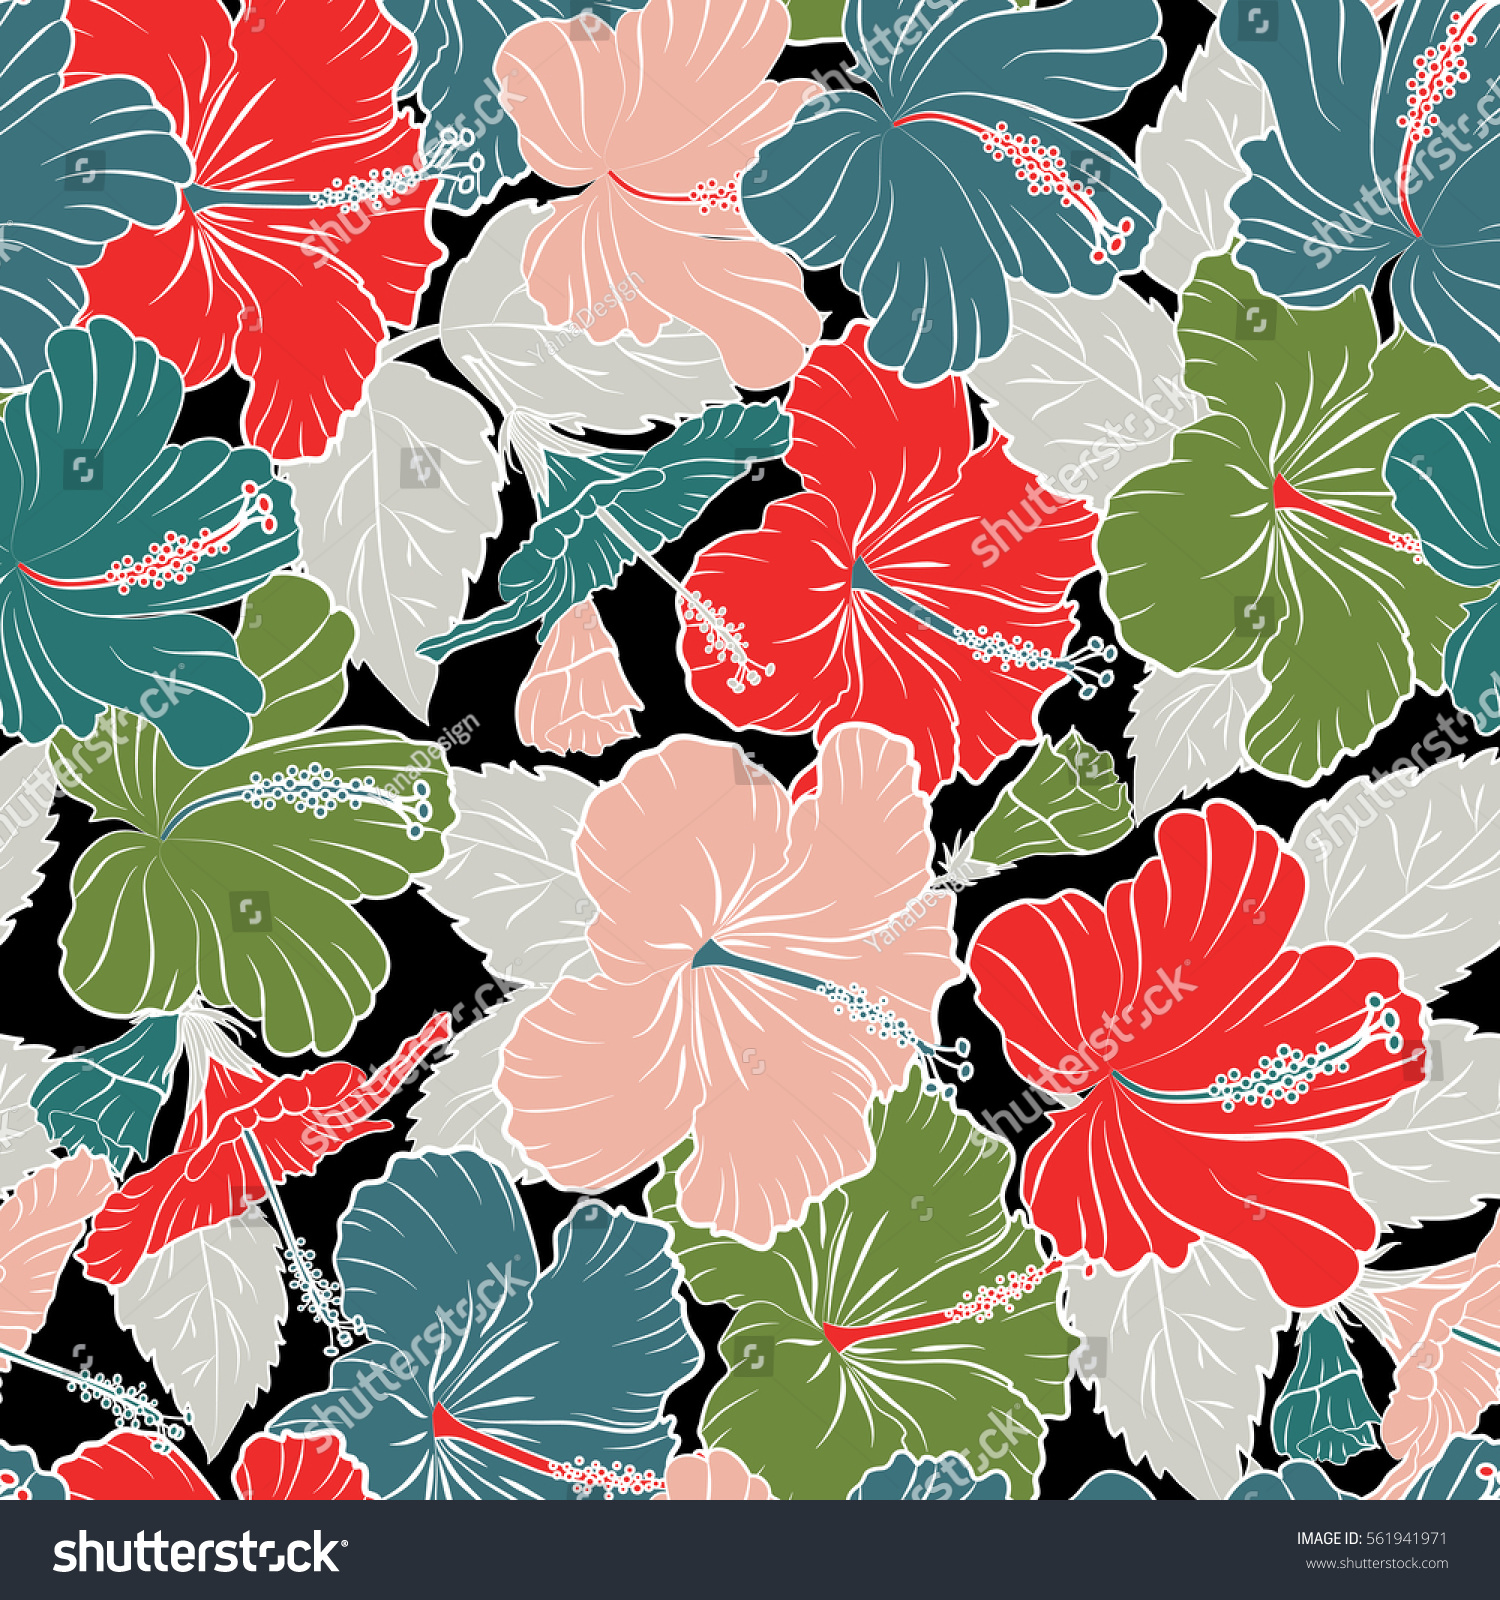 Hibiscus flowers on a black background in a trendy vector style hibiscus flowers on a black background in a trendy vector style hawaiian tropical natural floral seamless pattern in red pink and blue colors ez canvas izmirmasajfo